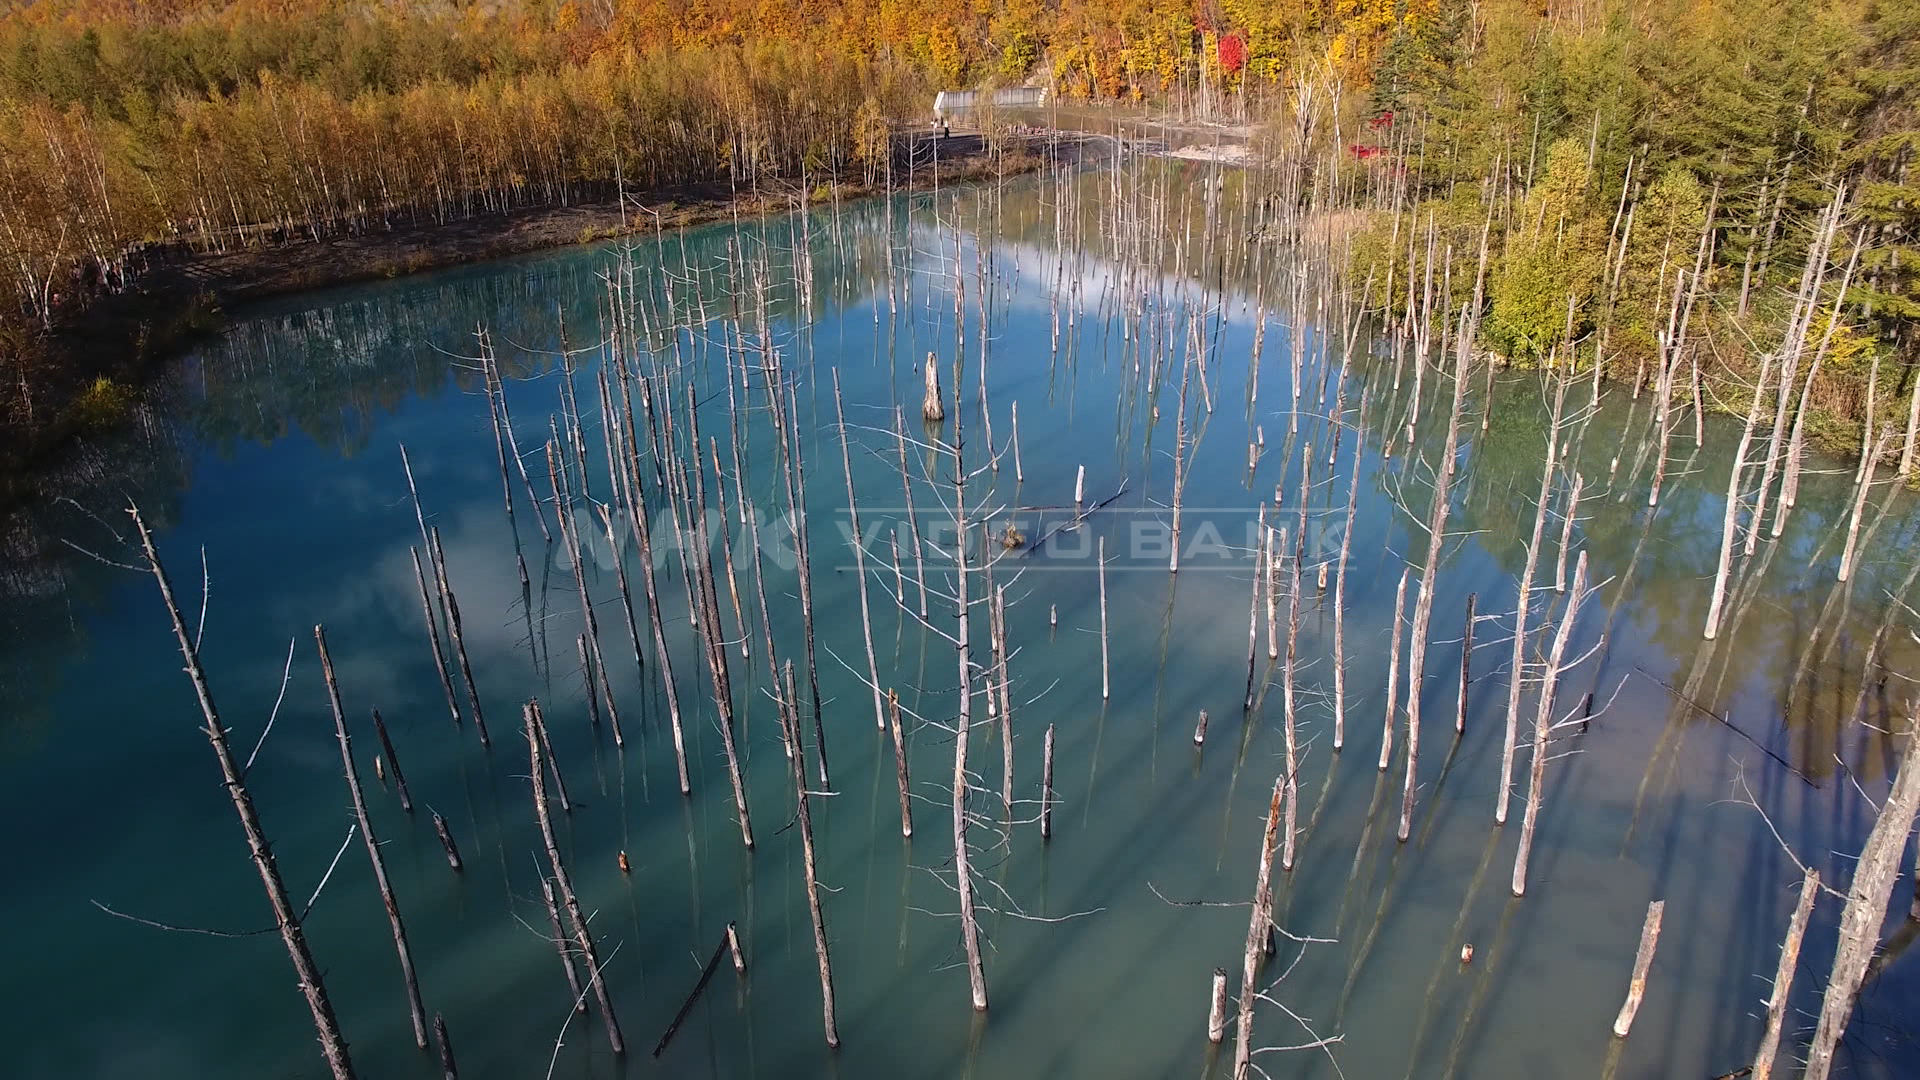 Drone shot: mysterious blue pond colored brightly in autumn scene, Hokkaido